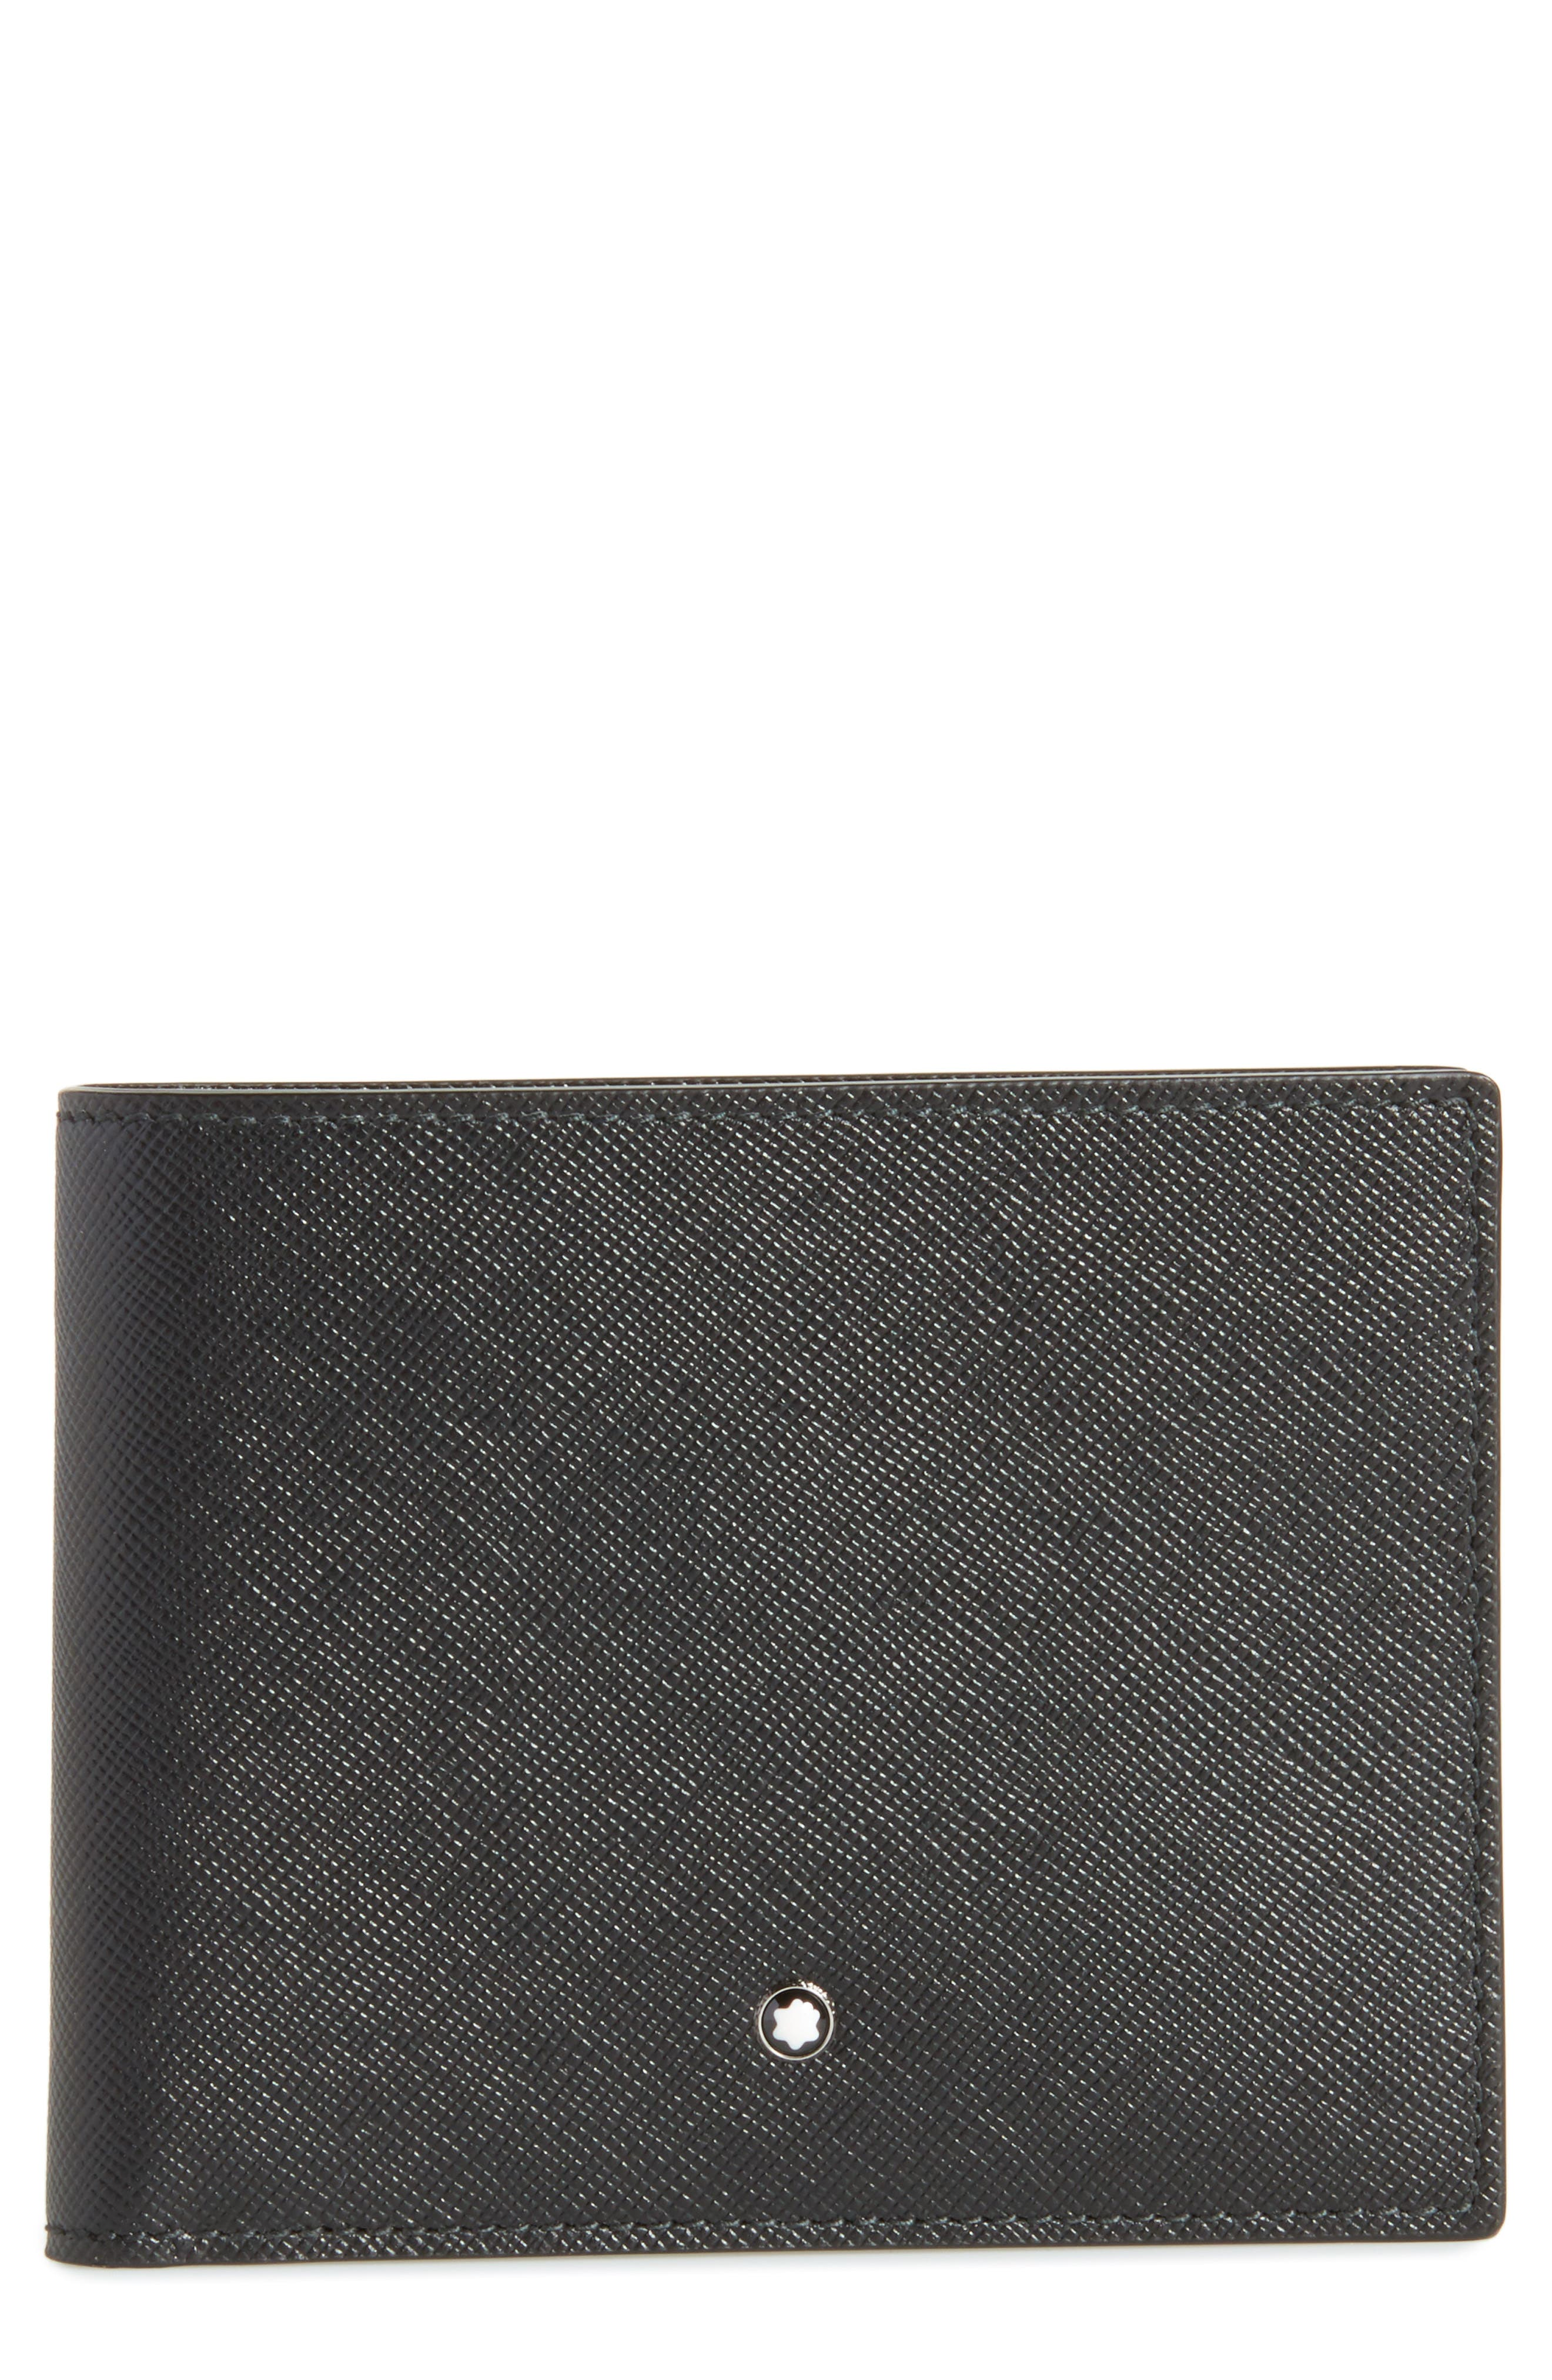 Sartorial Leather Bifold Wallet,                         Main,                         color, 001